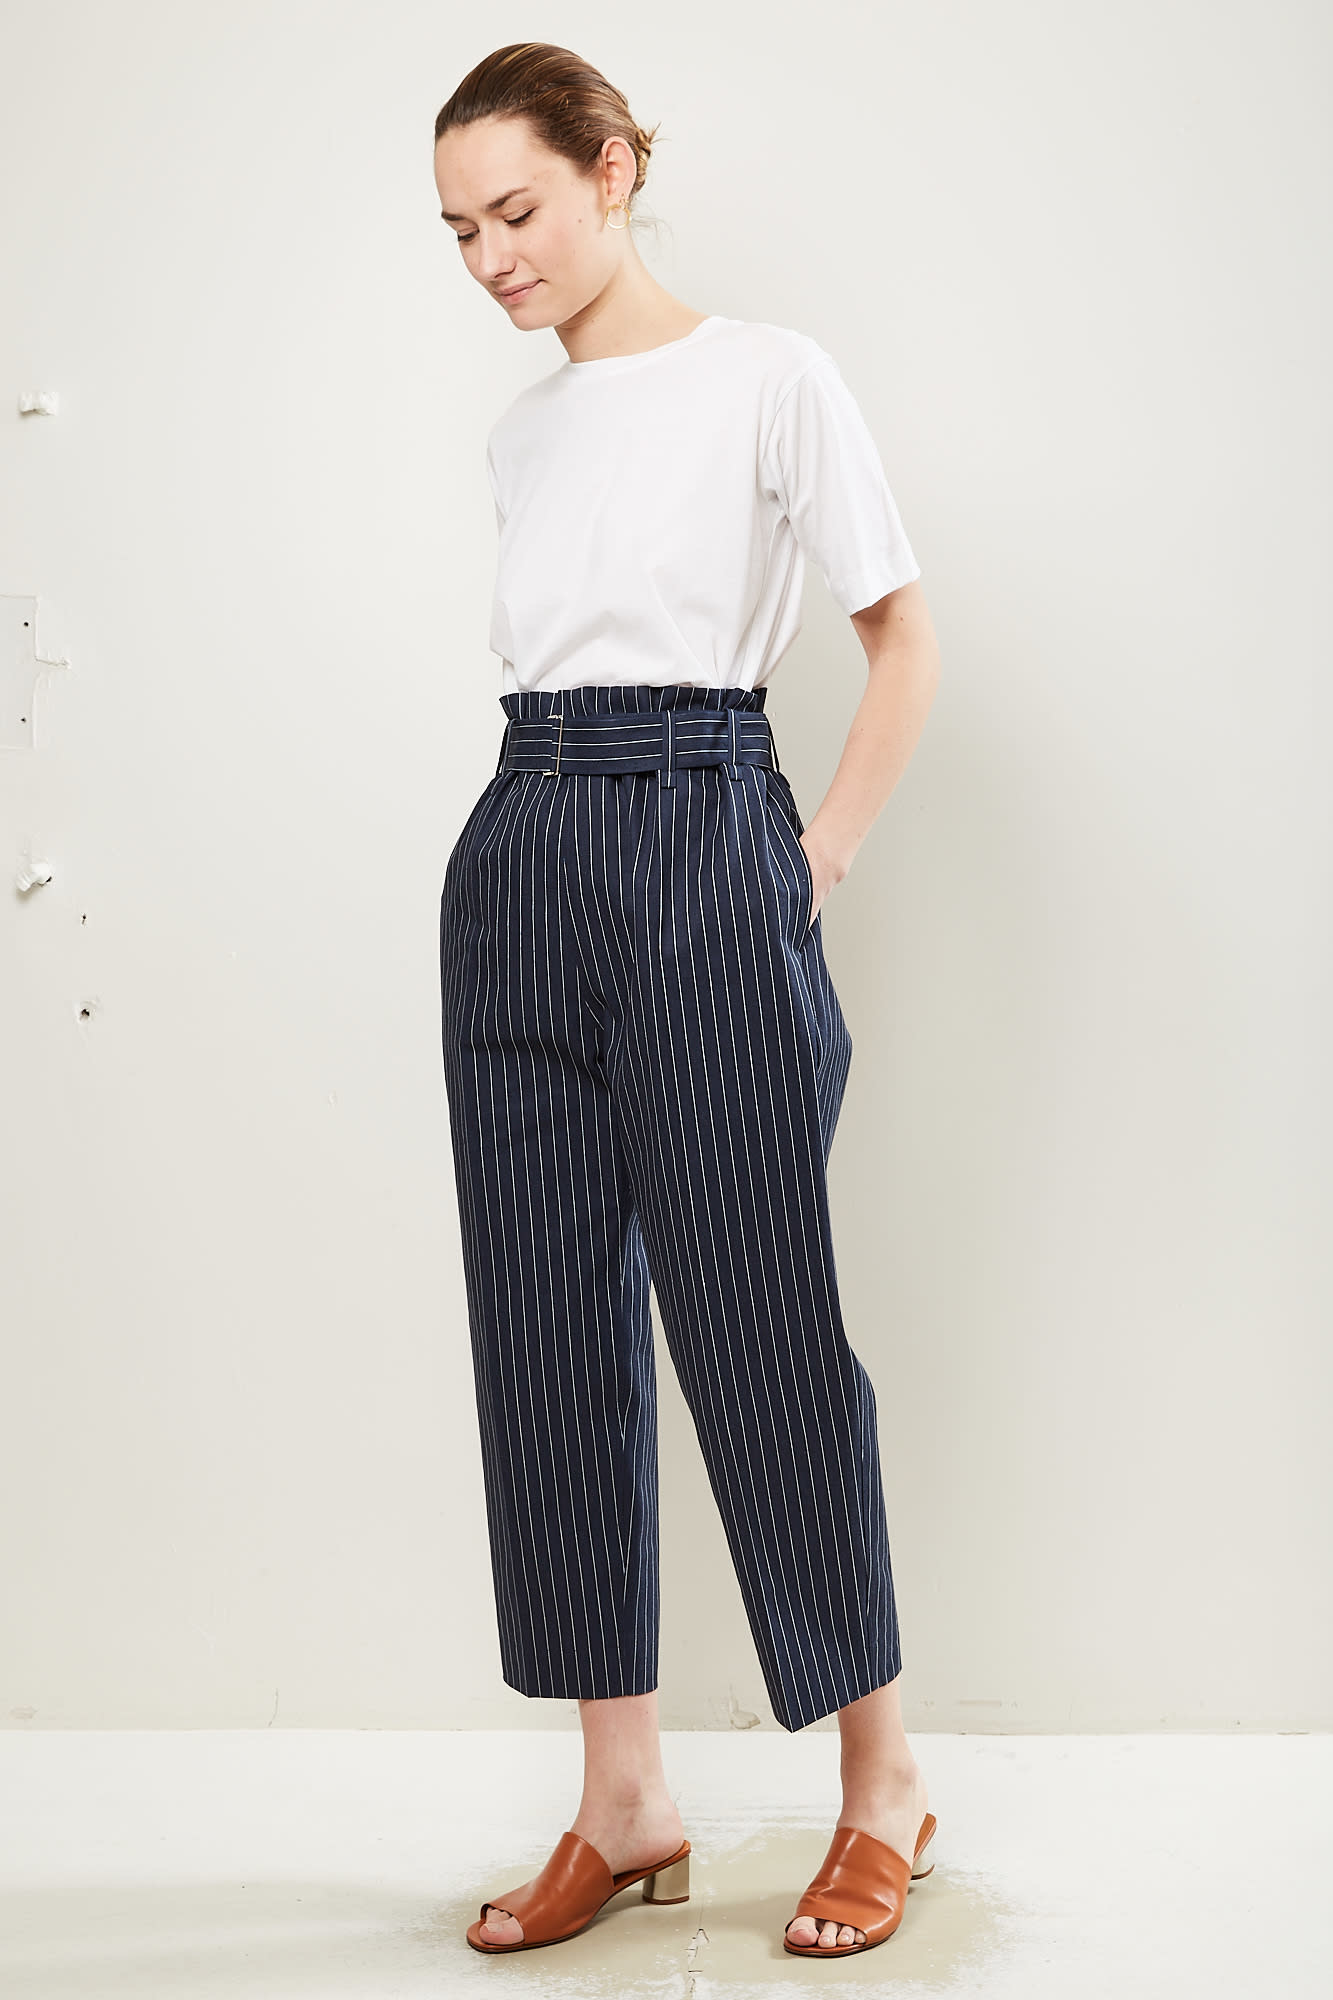 Sofie d'Hoore Pride twill cotton hickory pants